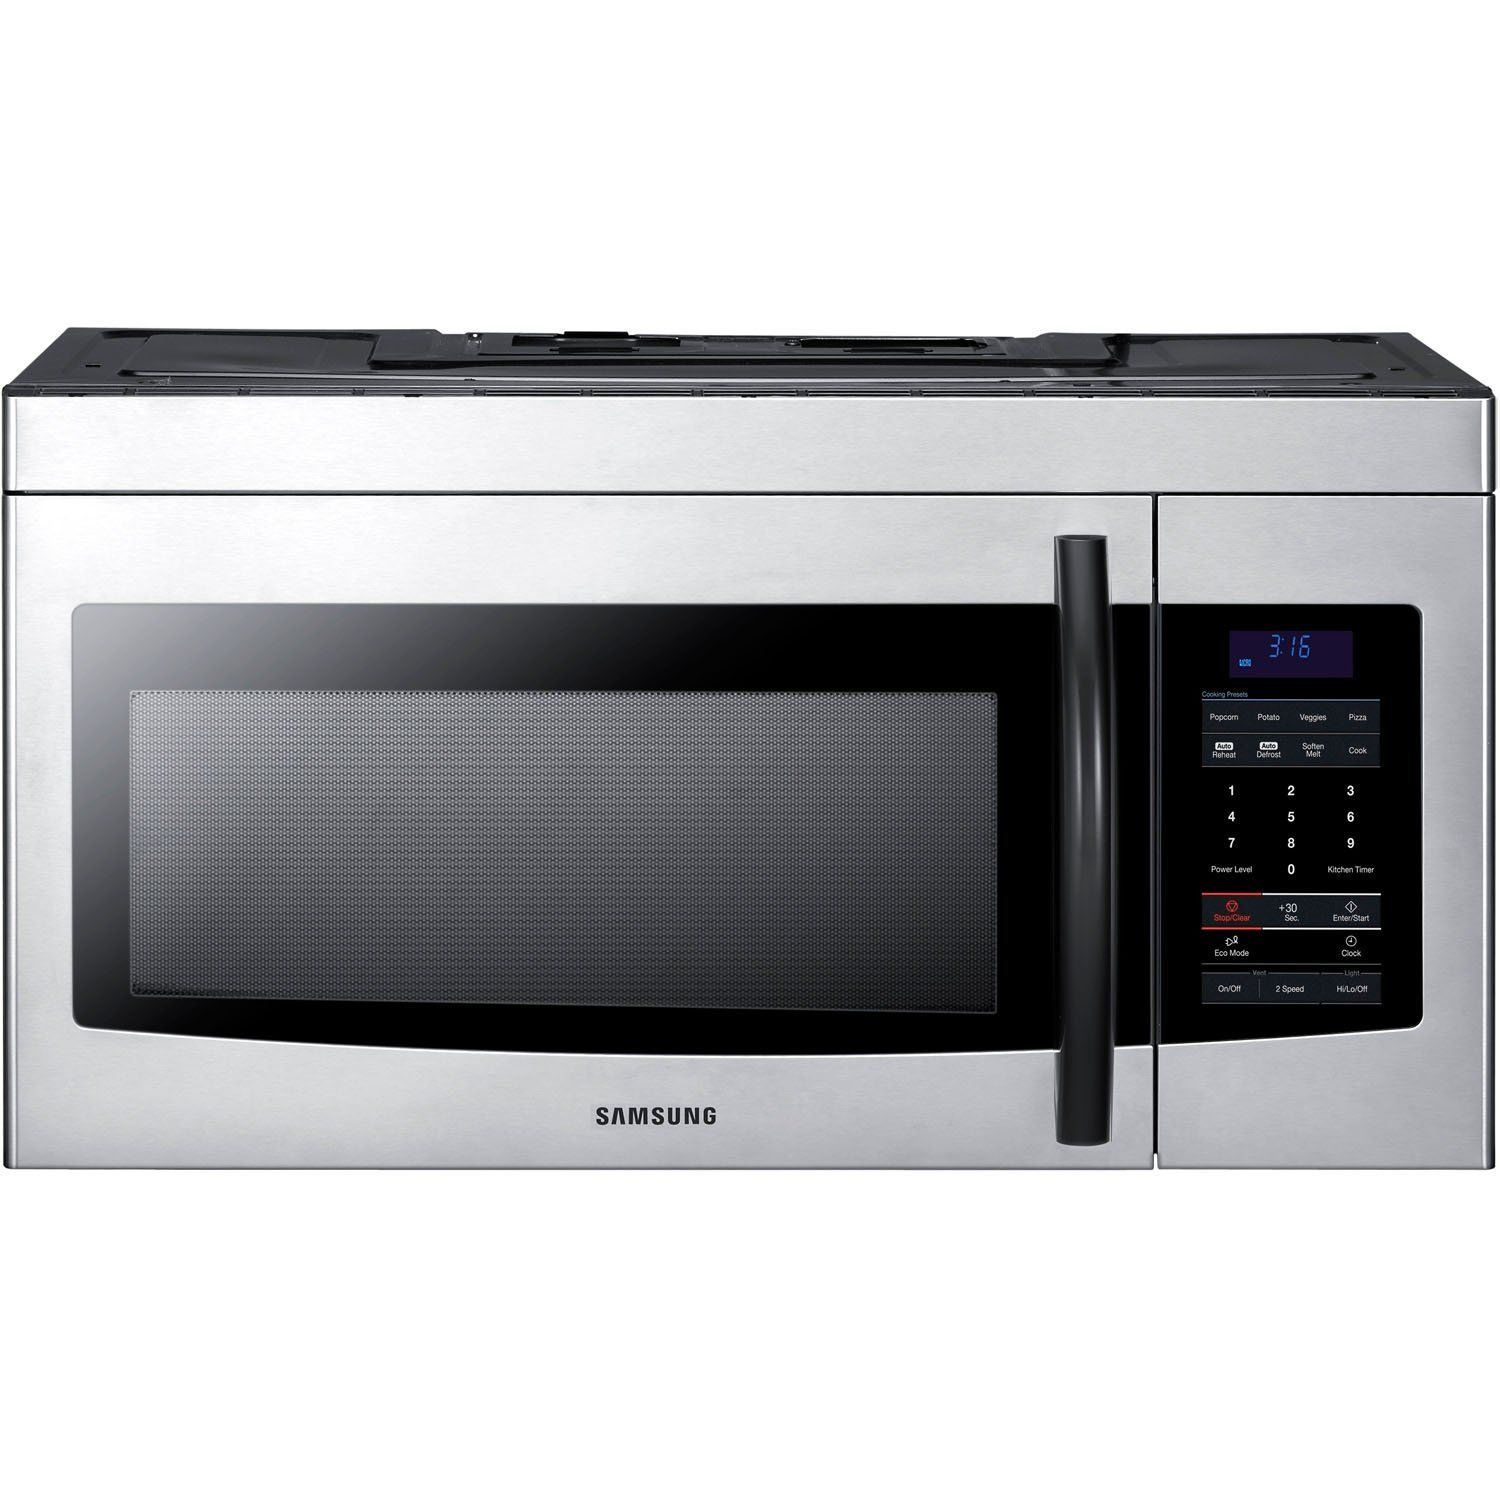 Samsung smh1622s 16 cu ft stainless steel overthe